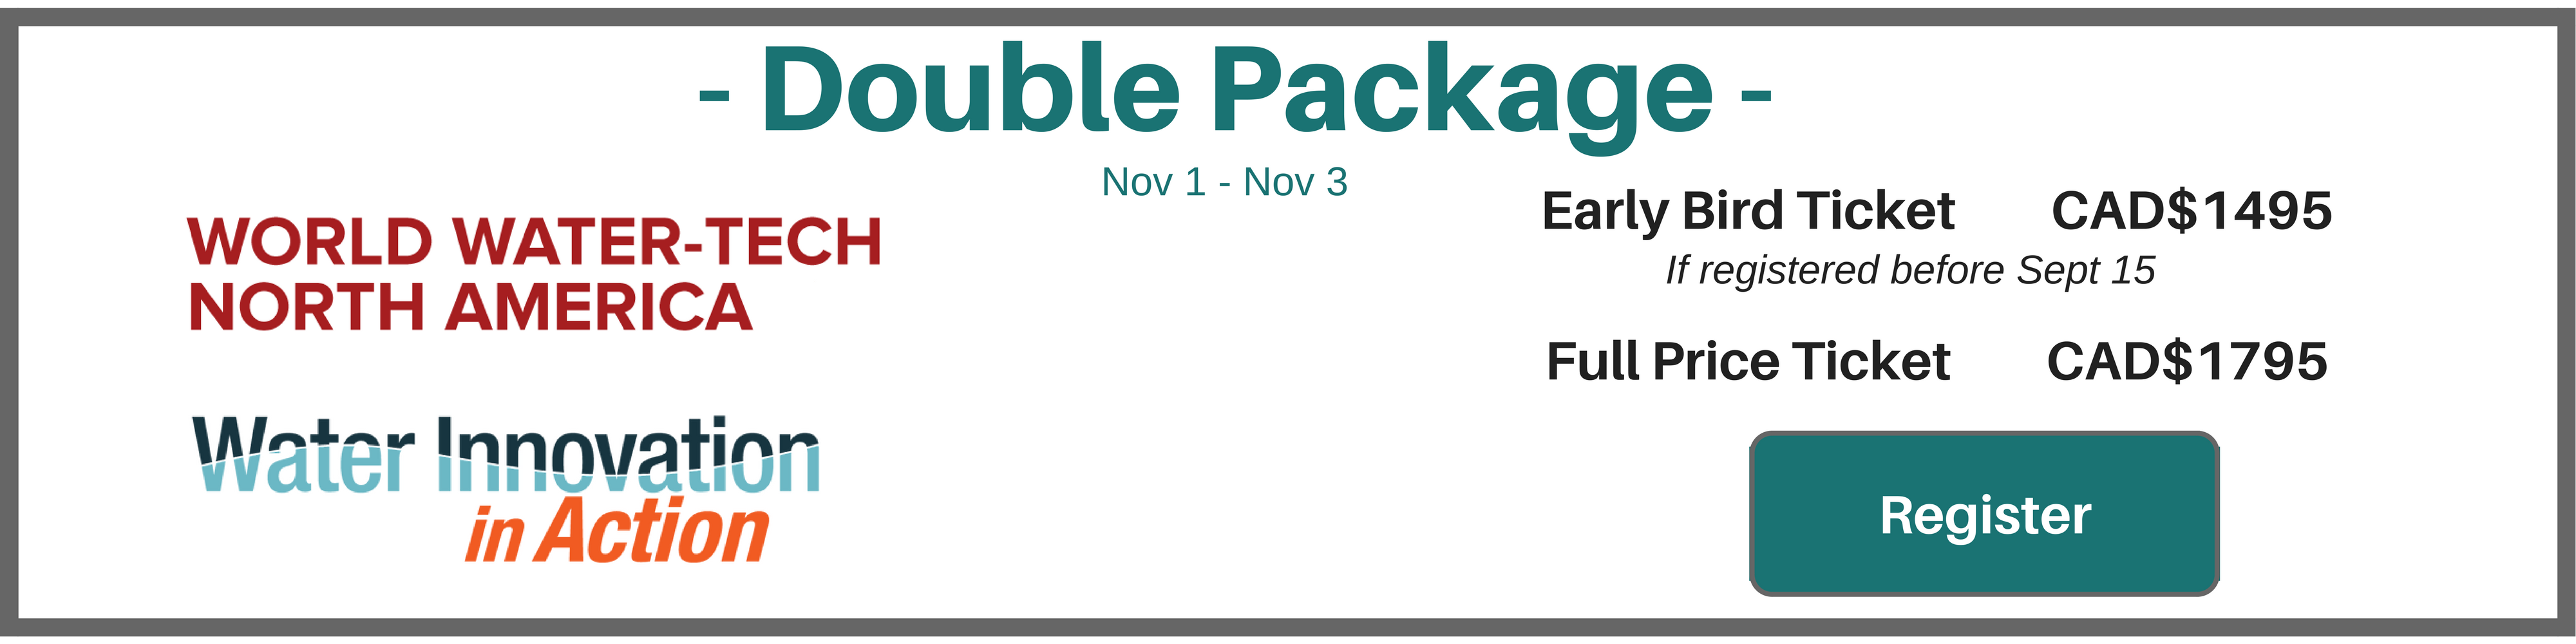 -Double Package-